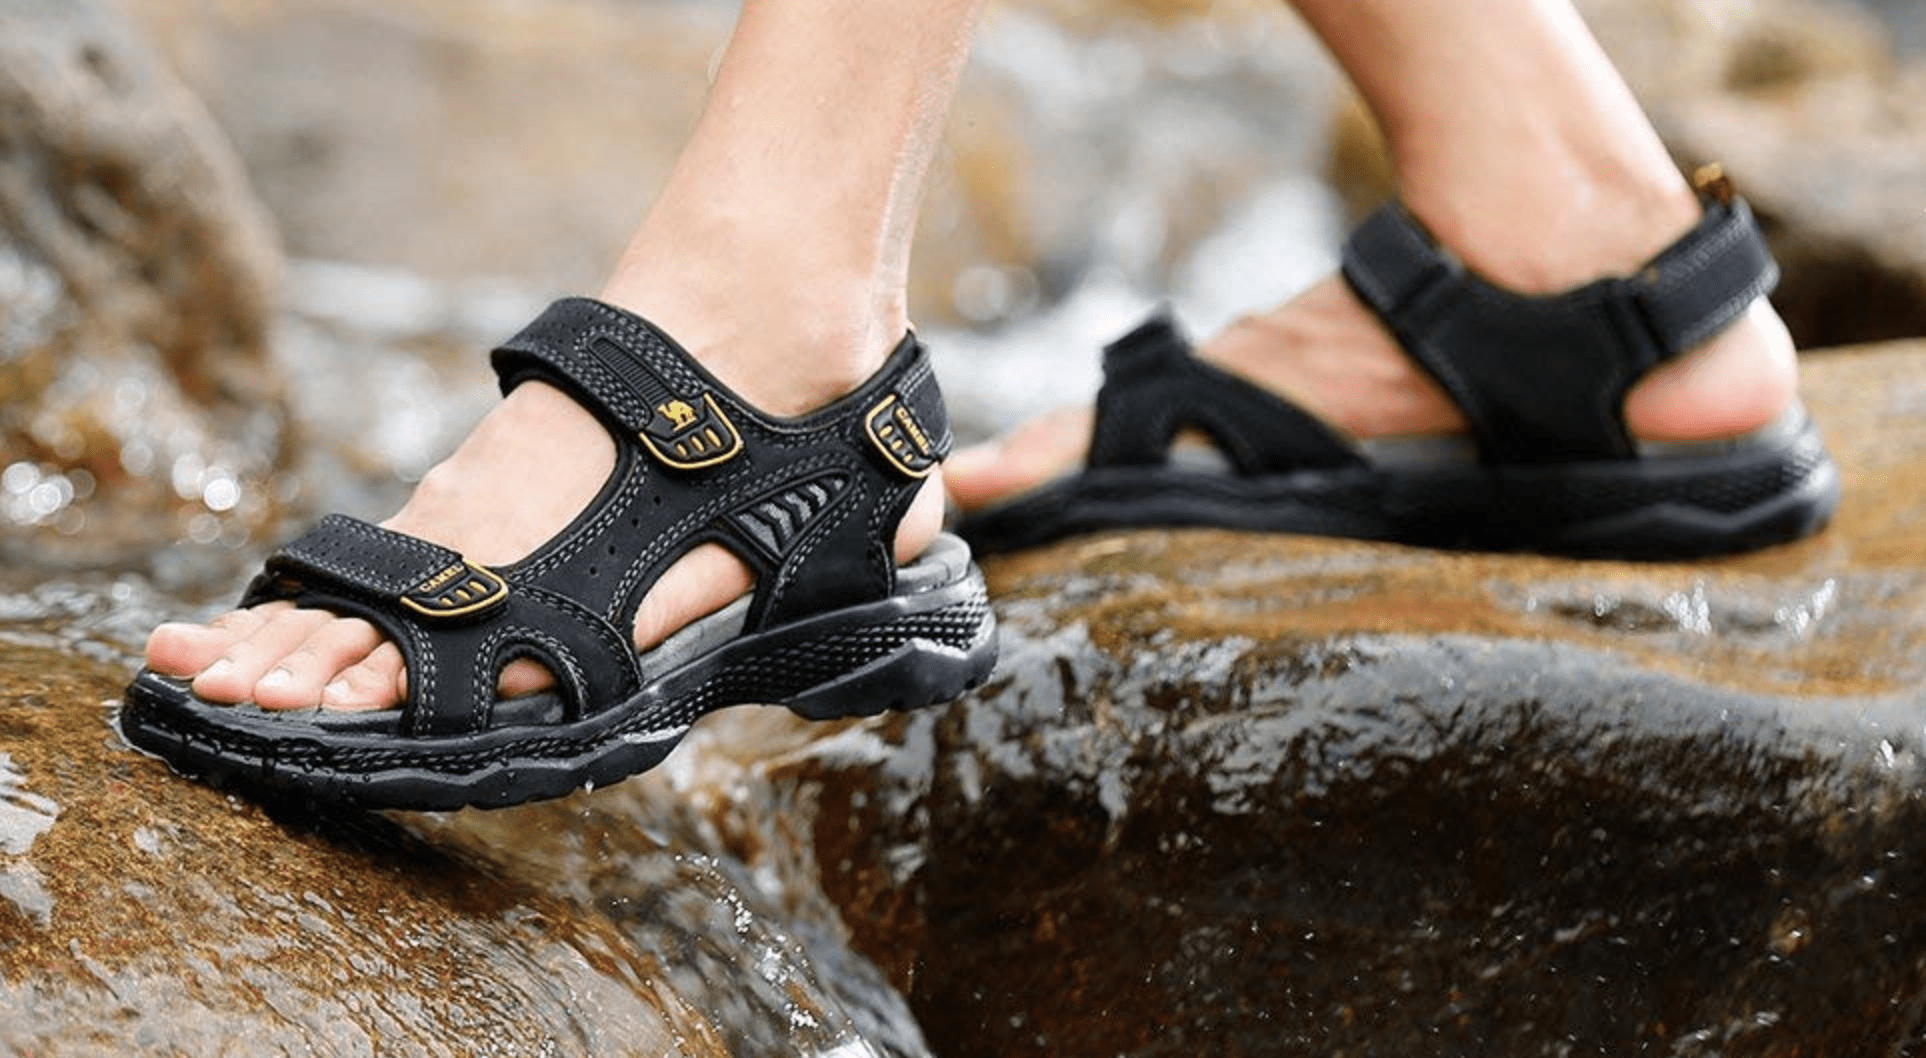 7b72cb3f1808 The 10 Best Hiking Sandals for Men in 2019 - Trendy Reviewed